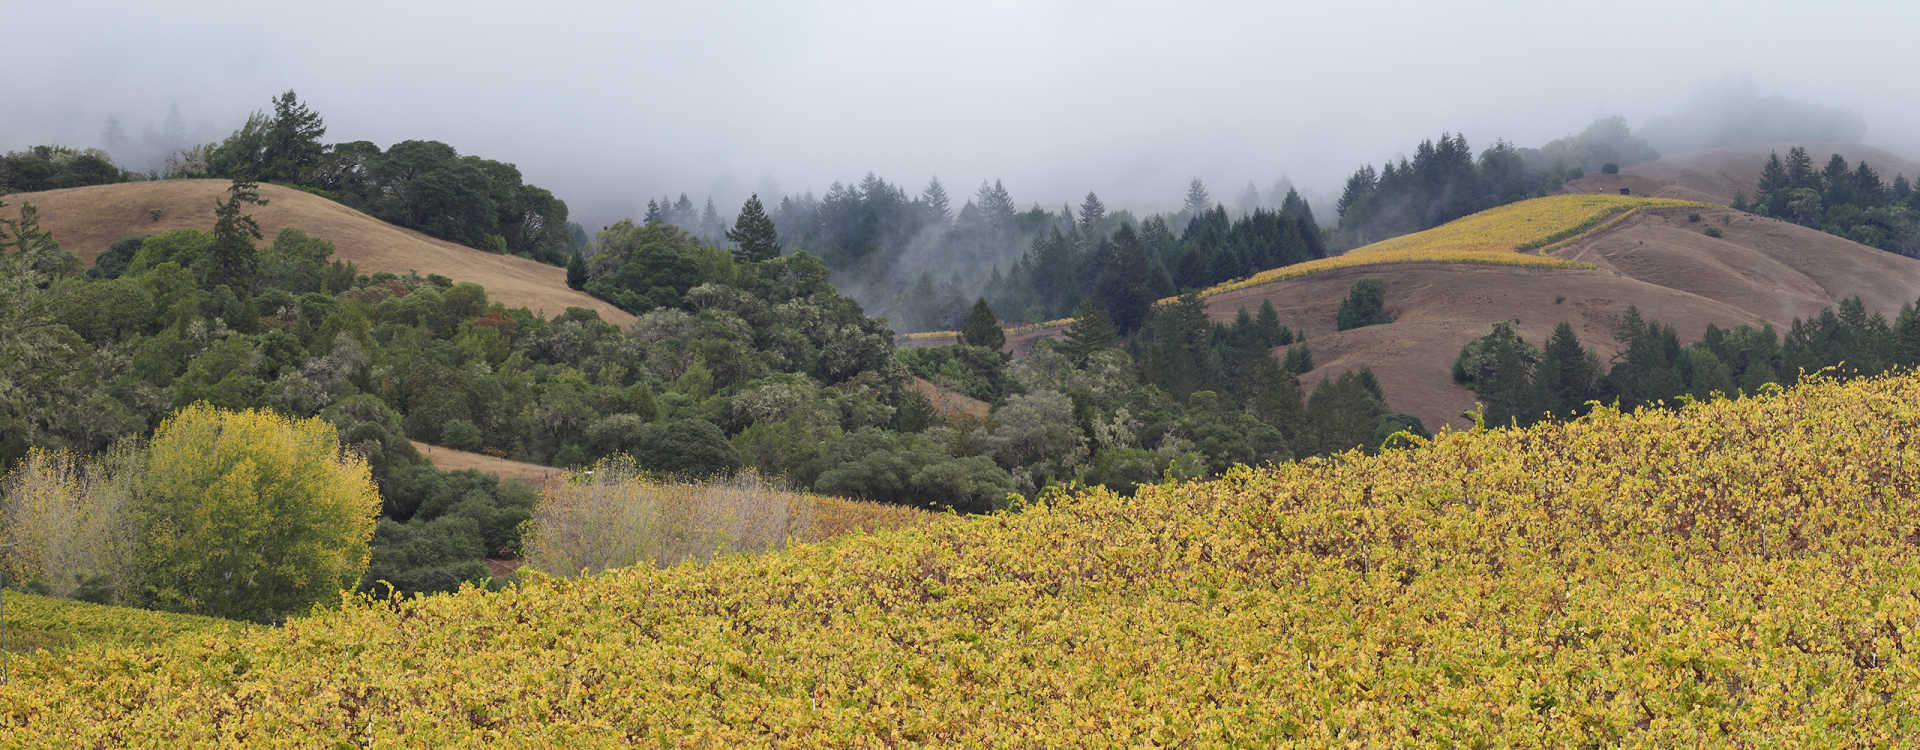 Image for Anderson Valley content section